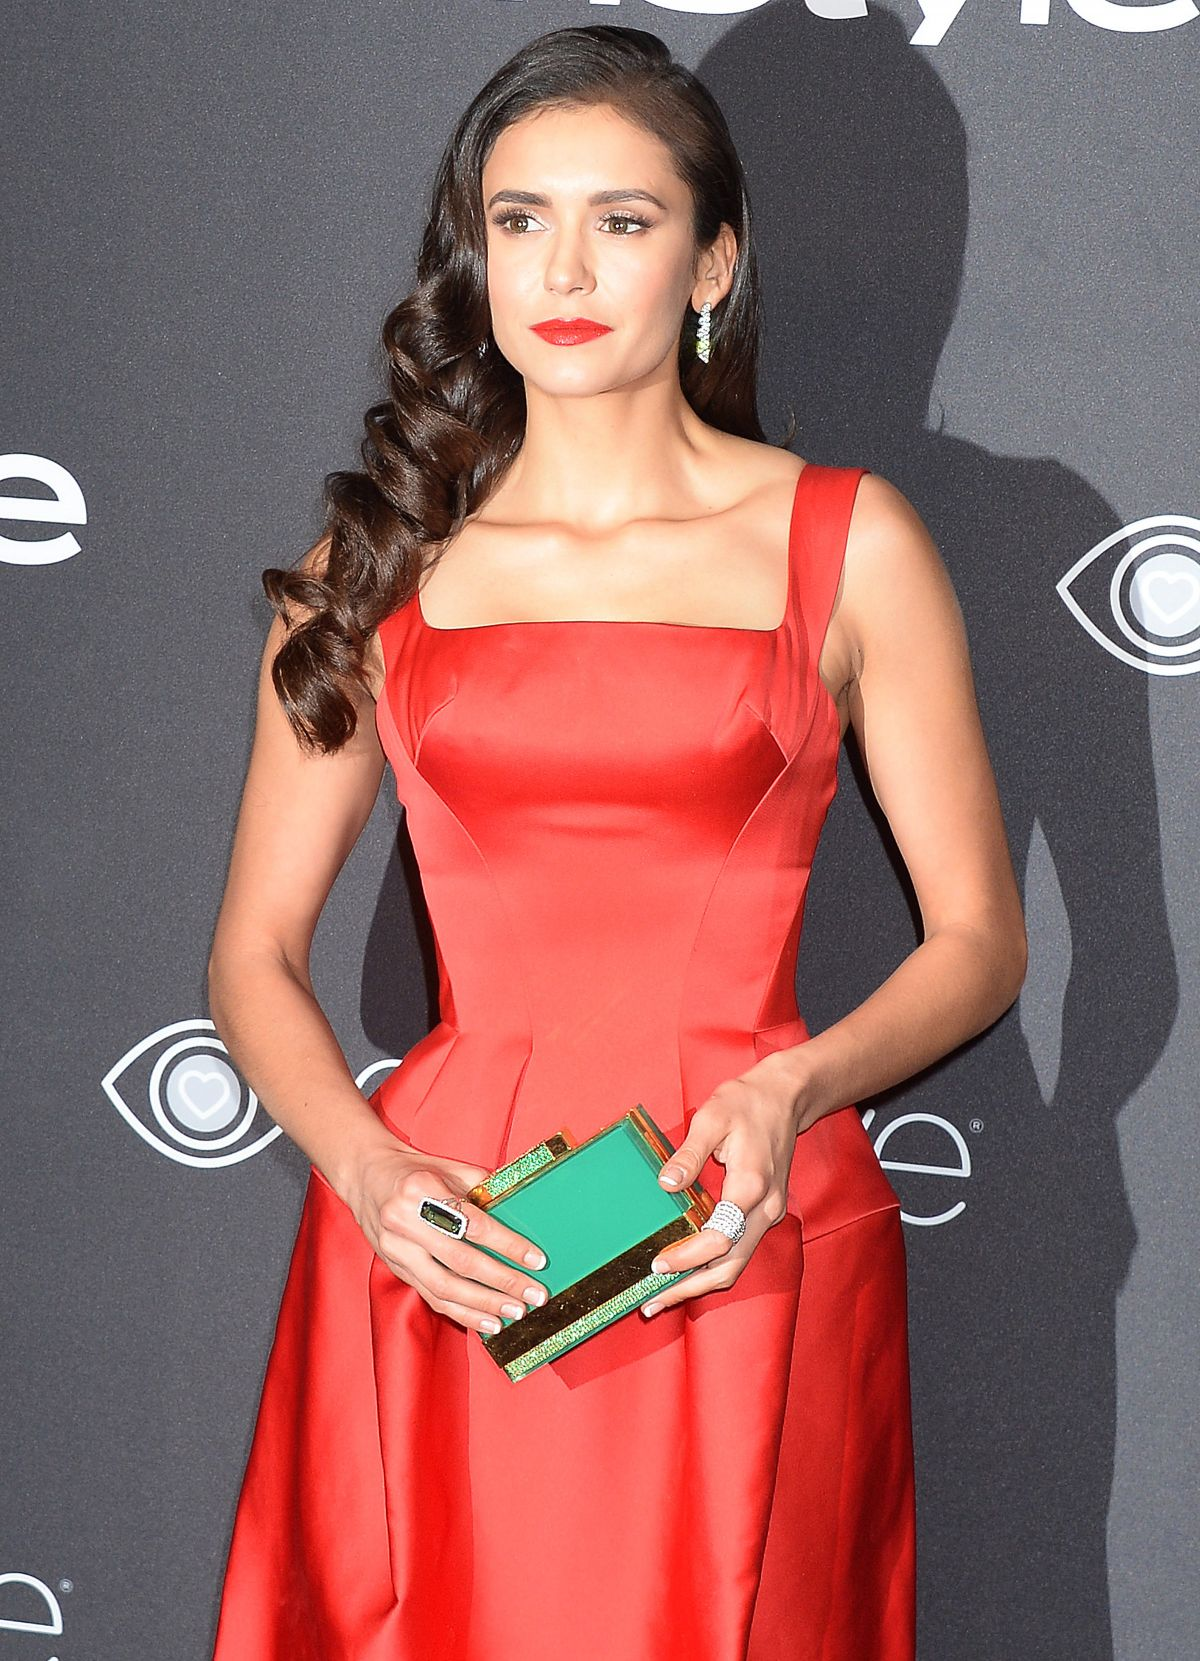 NINA DOBREV at Warner Bros. Pictures & Instyle's 18th Annual Golden Globes Party in Beverly Hills 01/08/2017